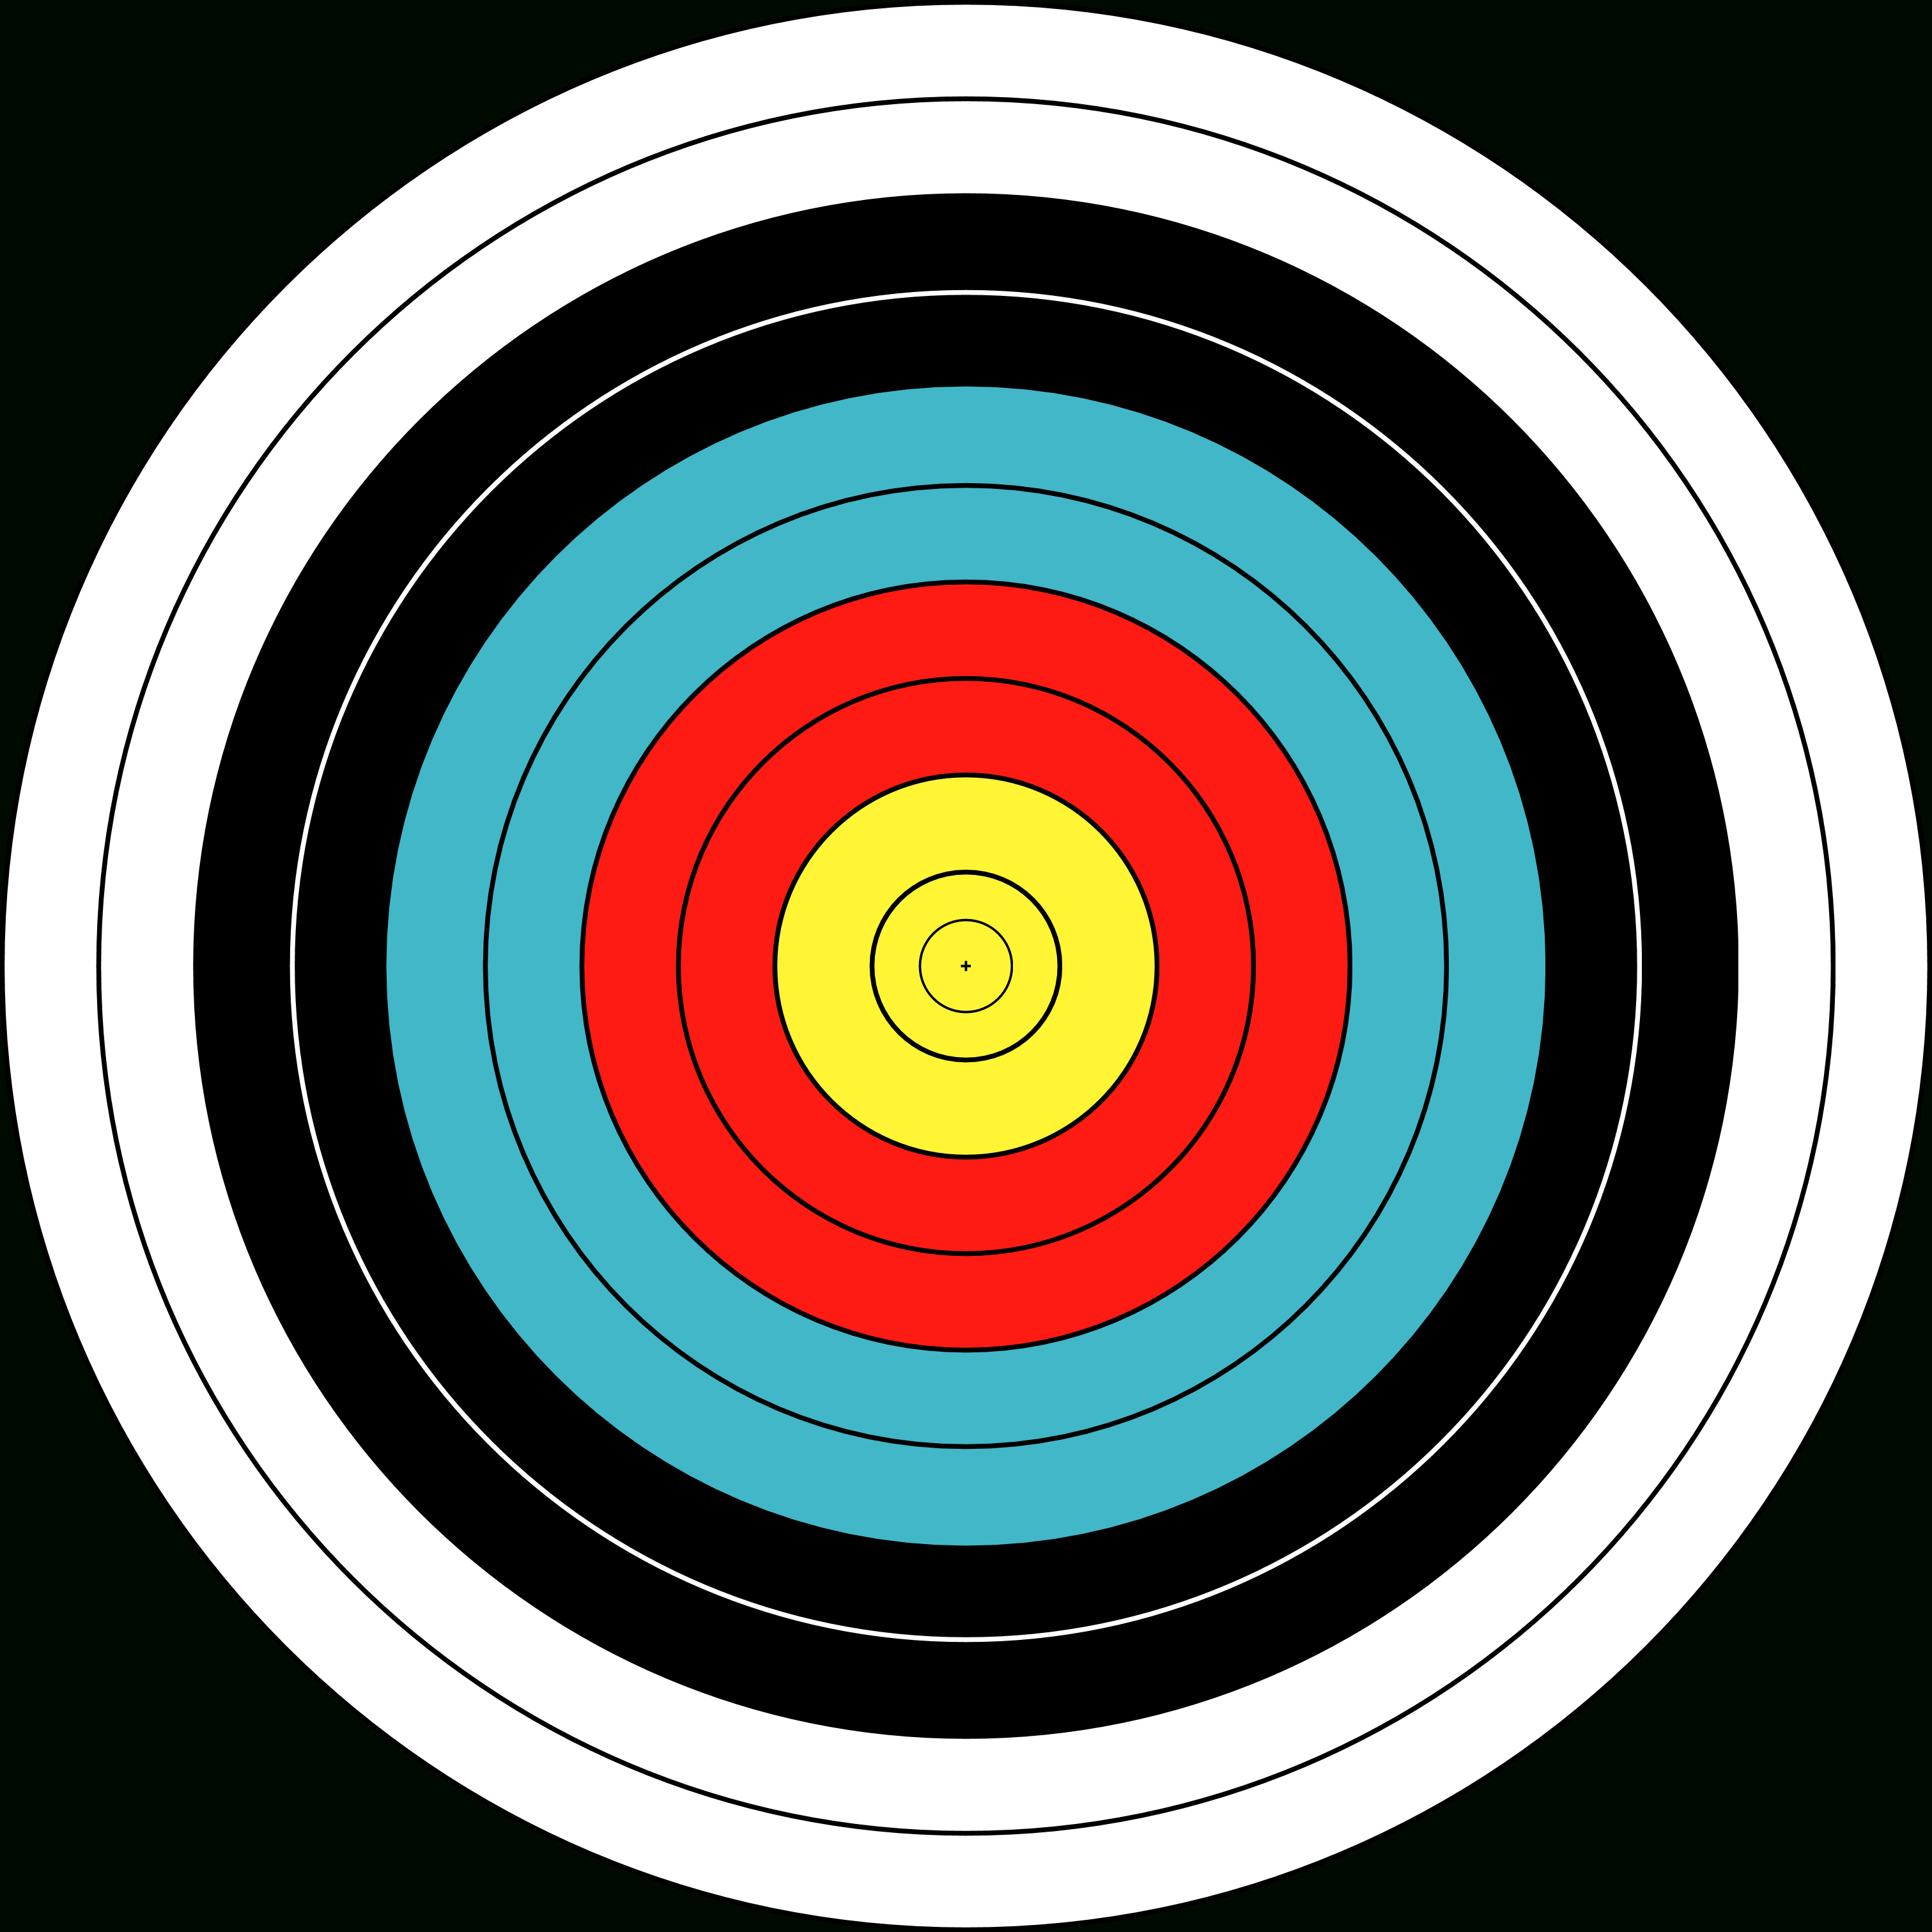 Free Picture Of Bullseye, Download Free Clip Art, Free Clip Art On - Free Printable Bullseye